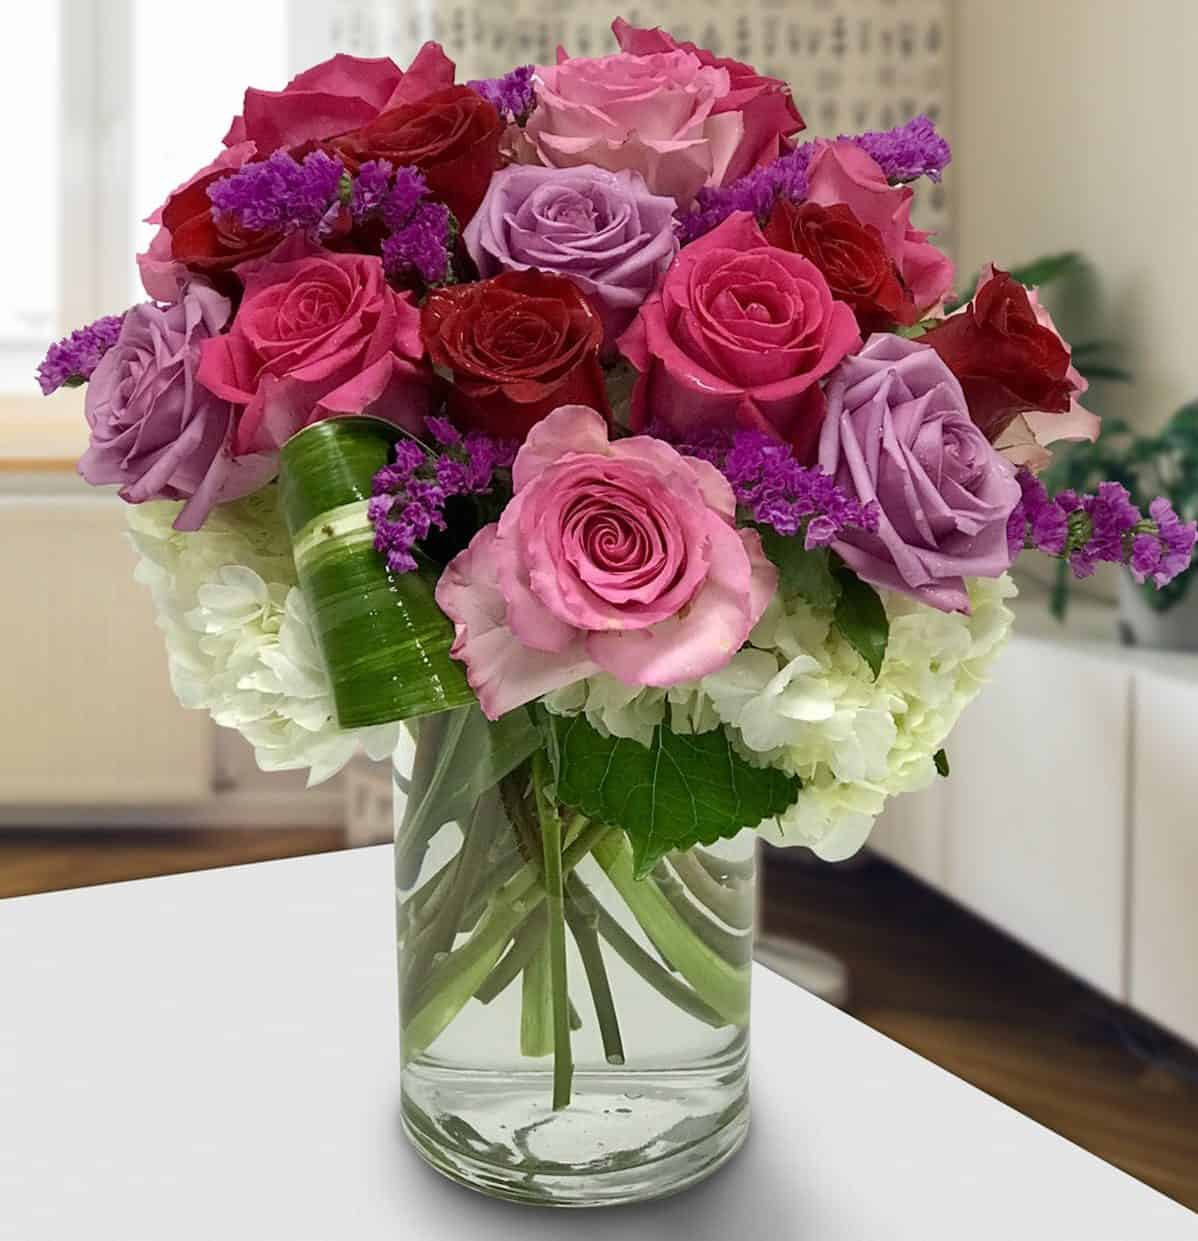 several different shades of red, pink and purple roses atop a bed of white hydrangea with purple stock laced throughout.